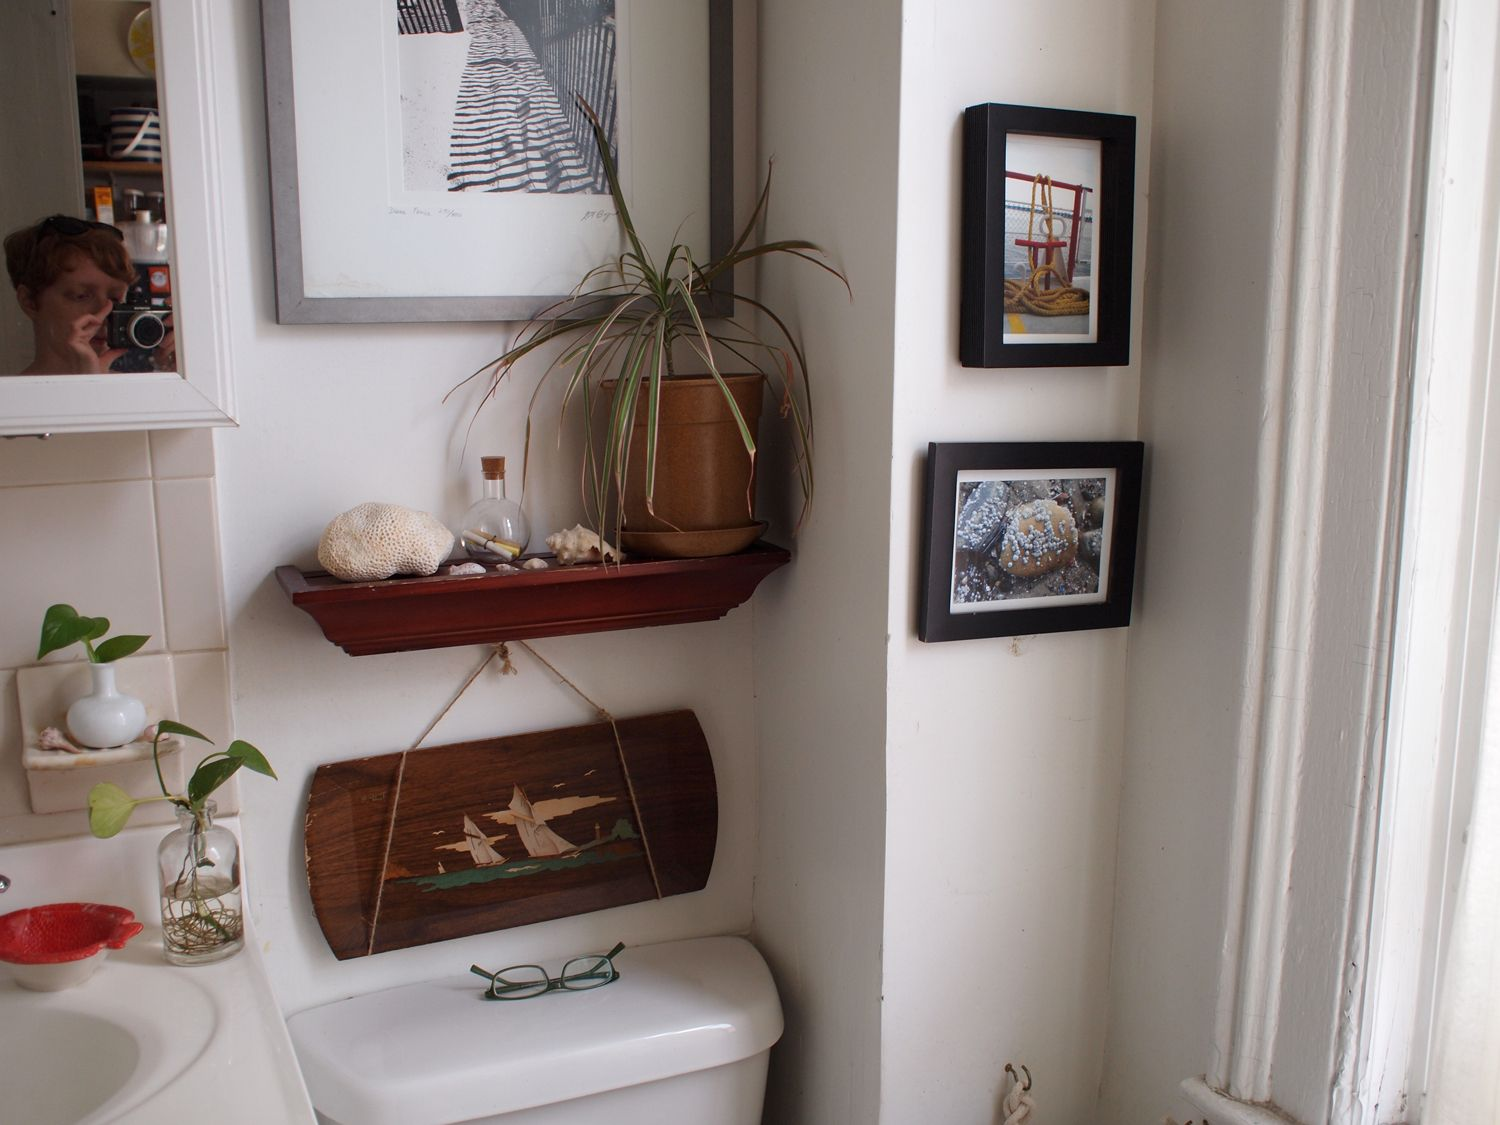 Ordinaire Bathroom Decor Nautical